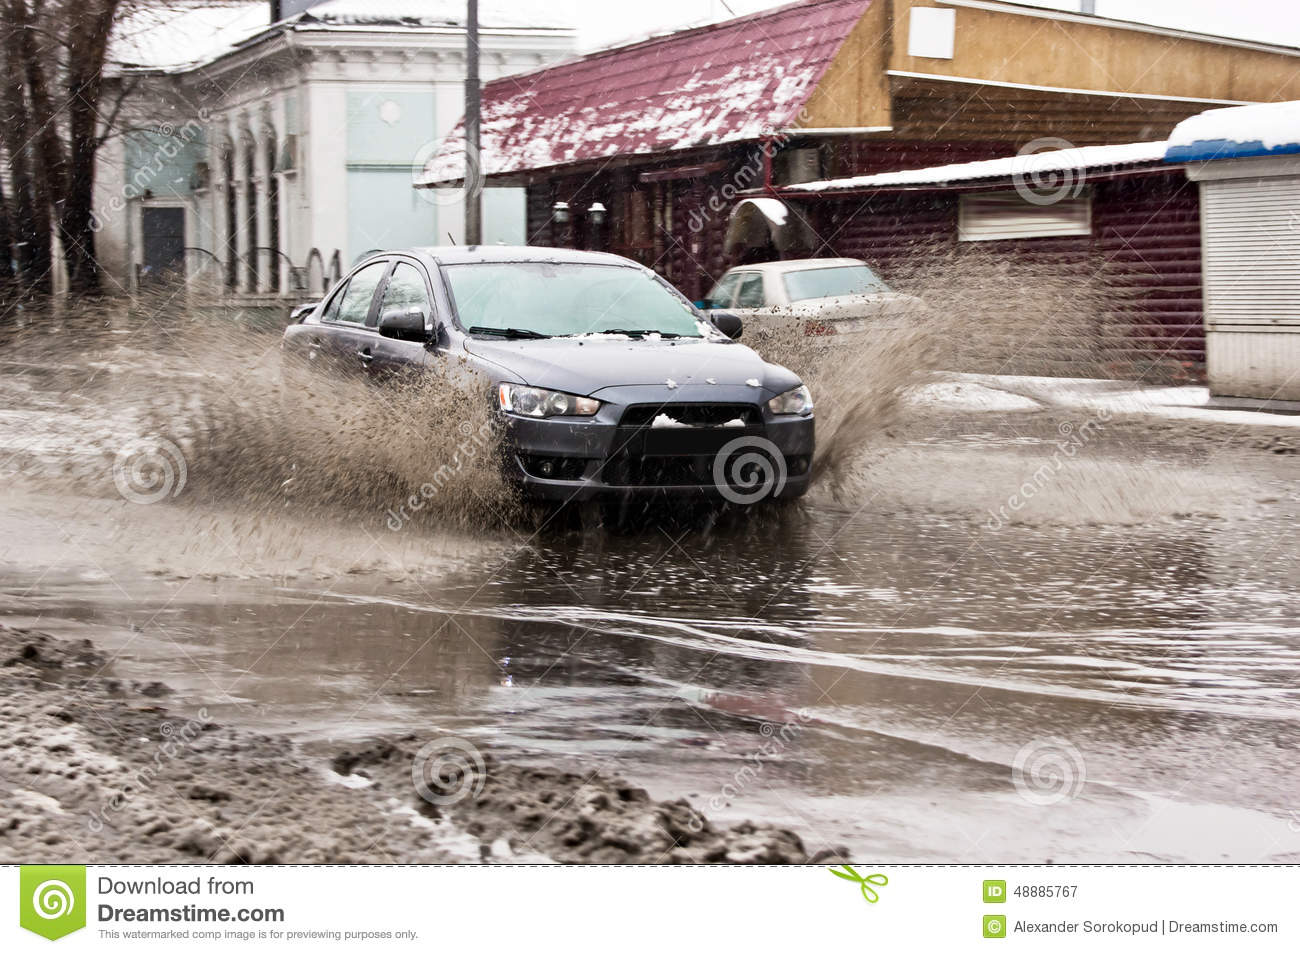 Download Dirty Water Splash From The Car Wheels At Spring Snowy Street Stock Image - Image of automobile, pouring: 48885767